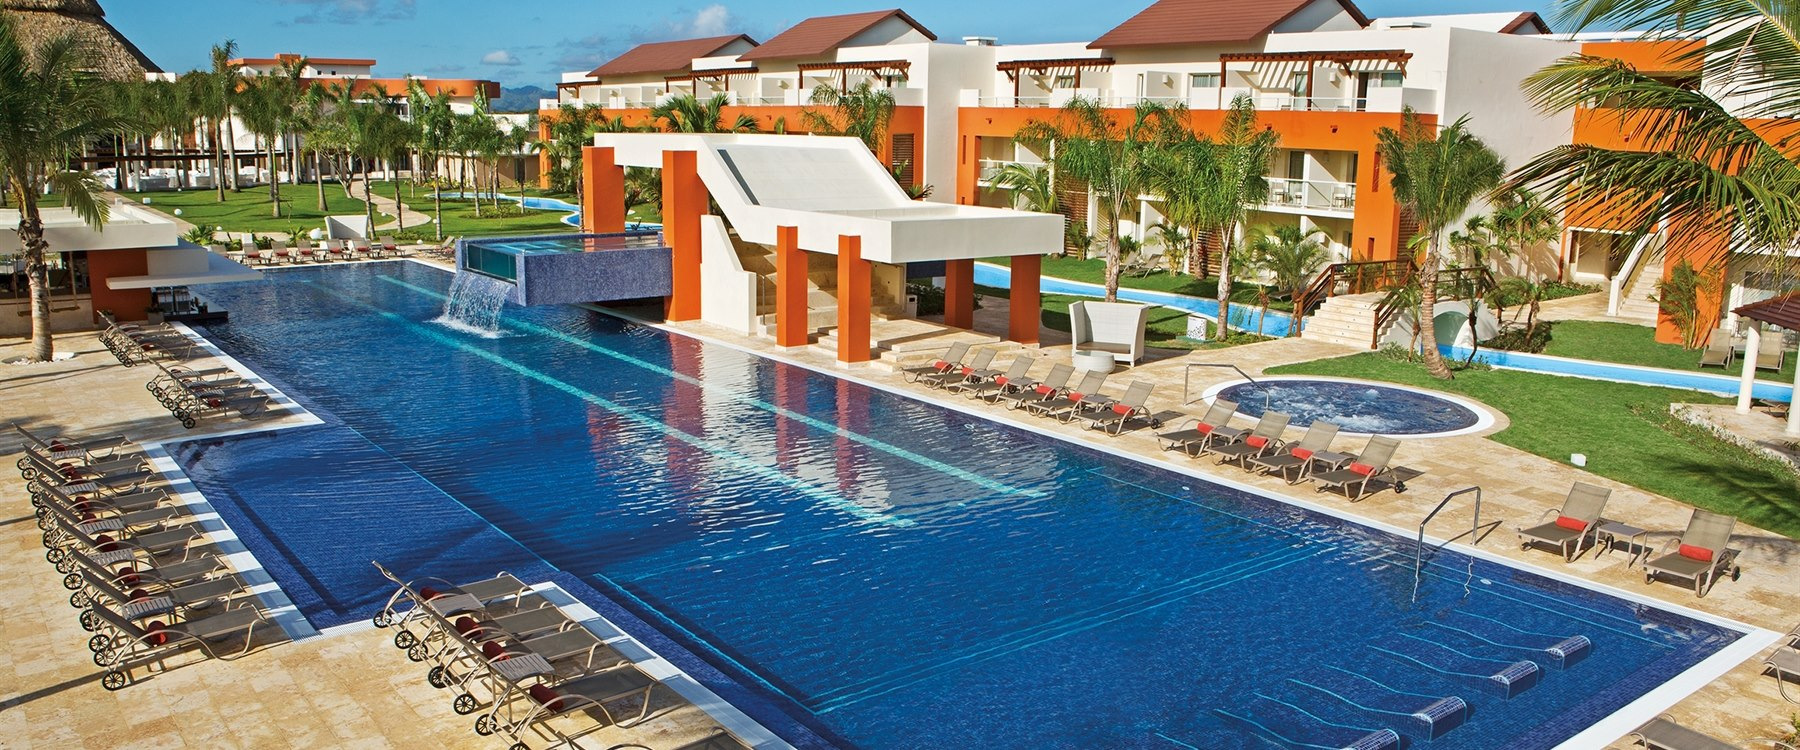 Freestyle Pool at Breathless Punta Cana Resort & Spa